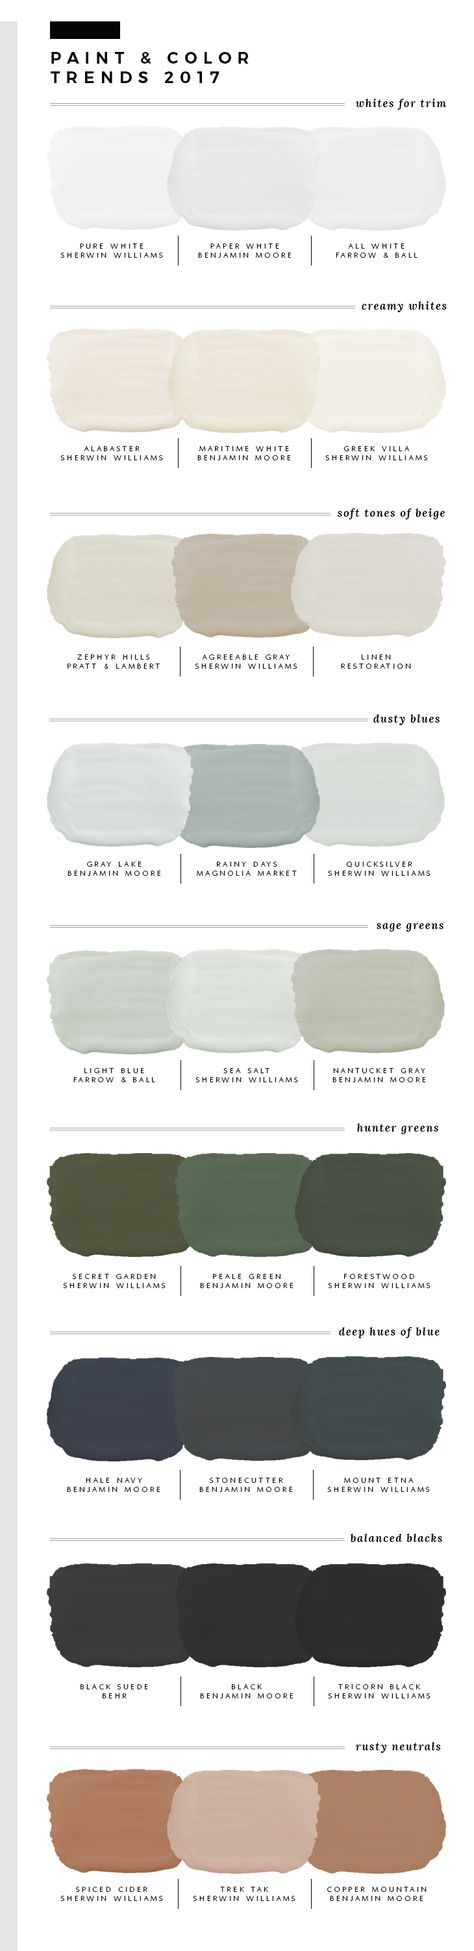 Predicted Paint Colors for 2017  색채학, 페인트 색 및 욕실